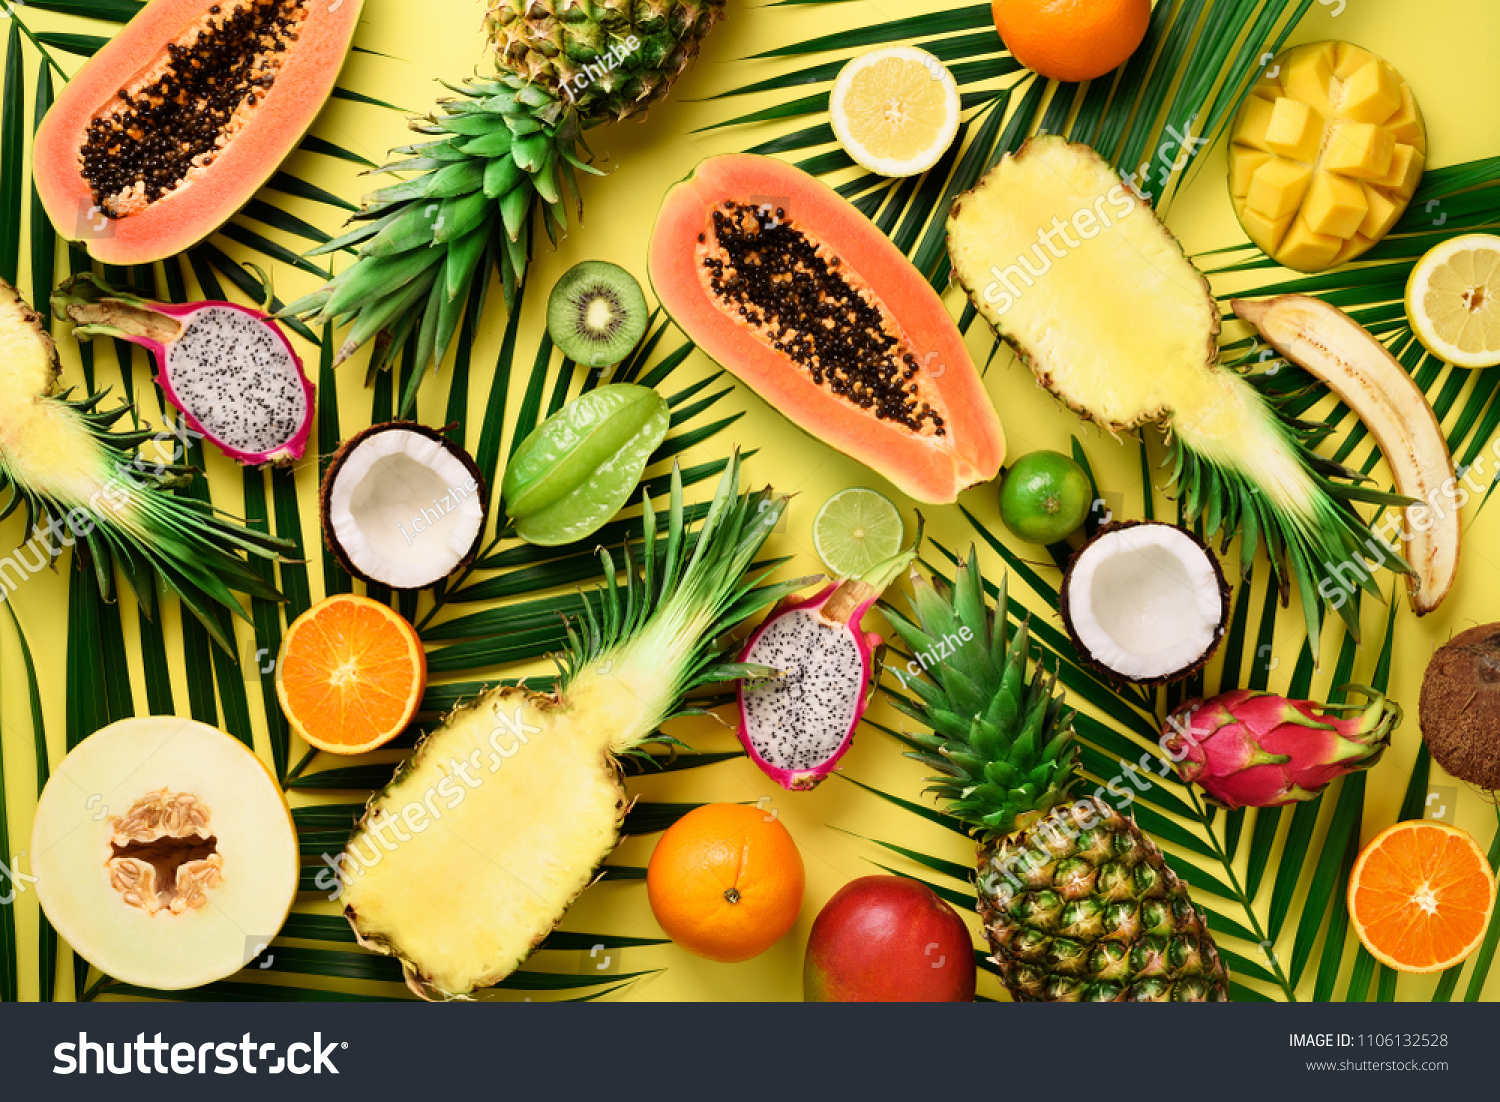 Exotic fruits and tropical palm leaves on pastel yellow background - papaya, mango, pineapple, banana, carambola, dragon fruit, kiwi, lemon, orange, melon, coconut, lime. Top view